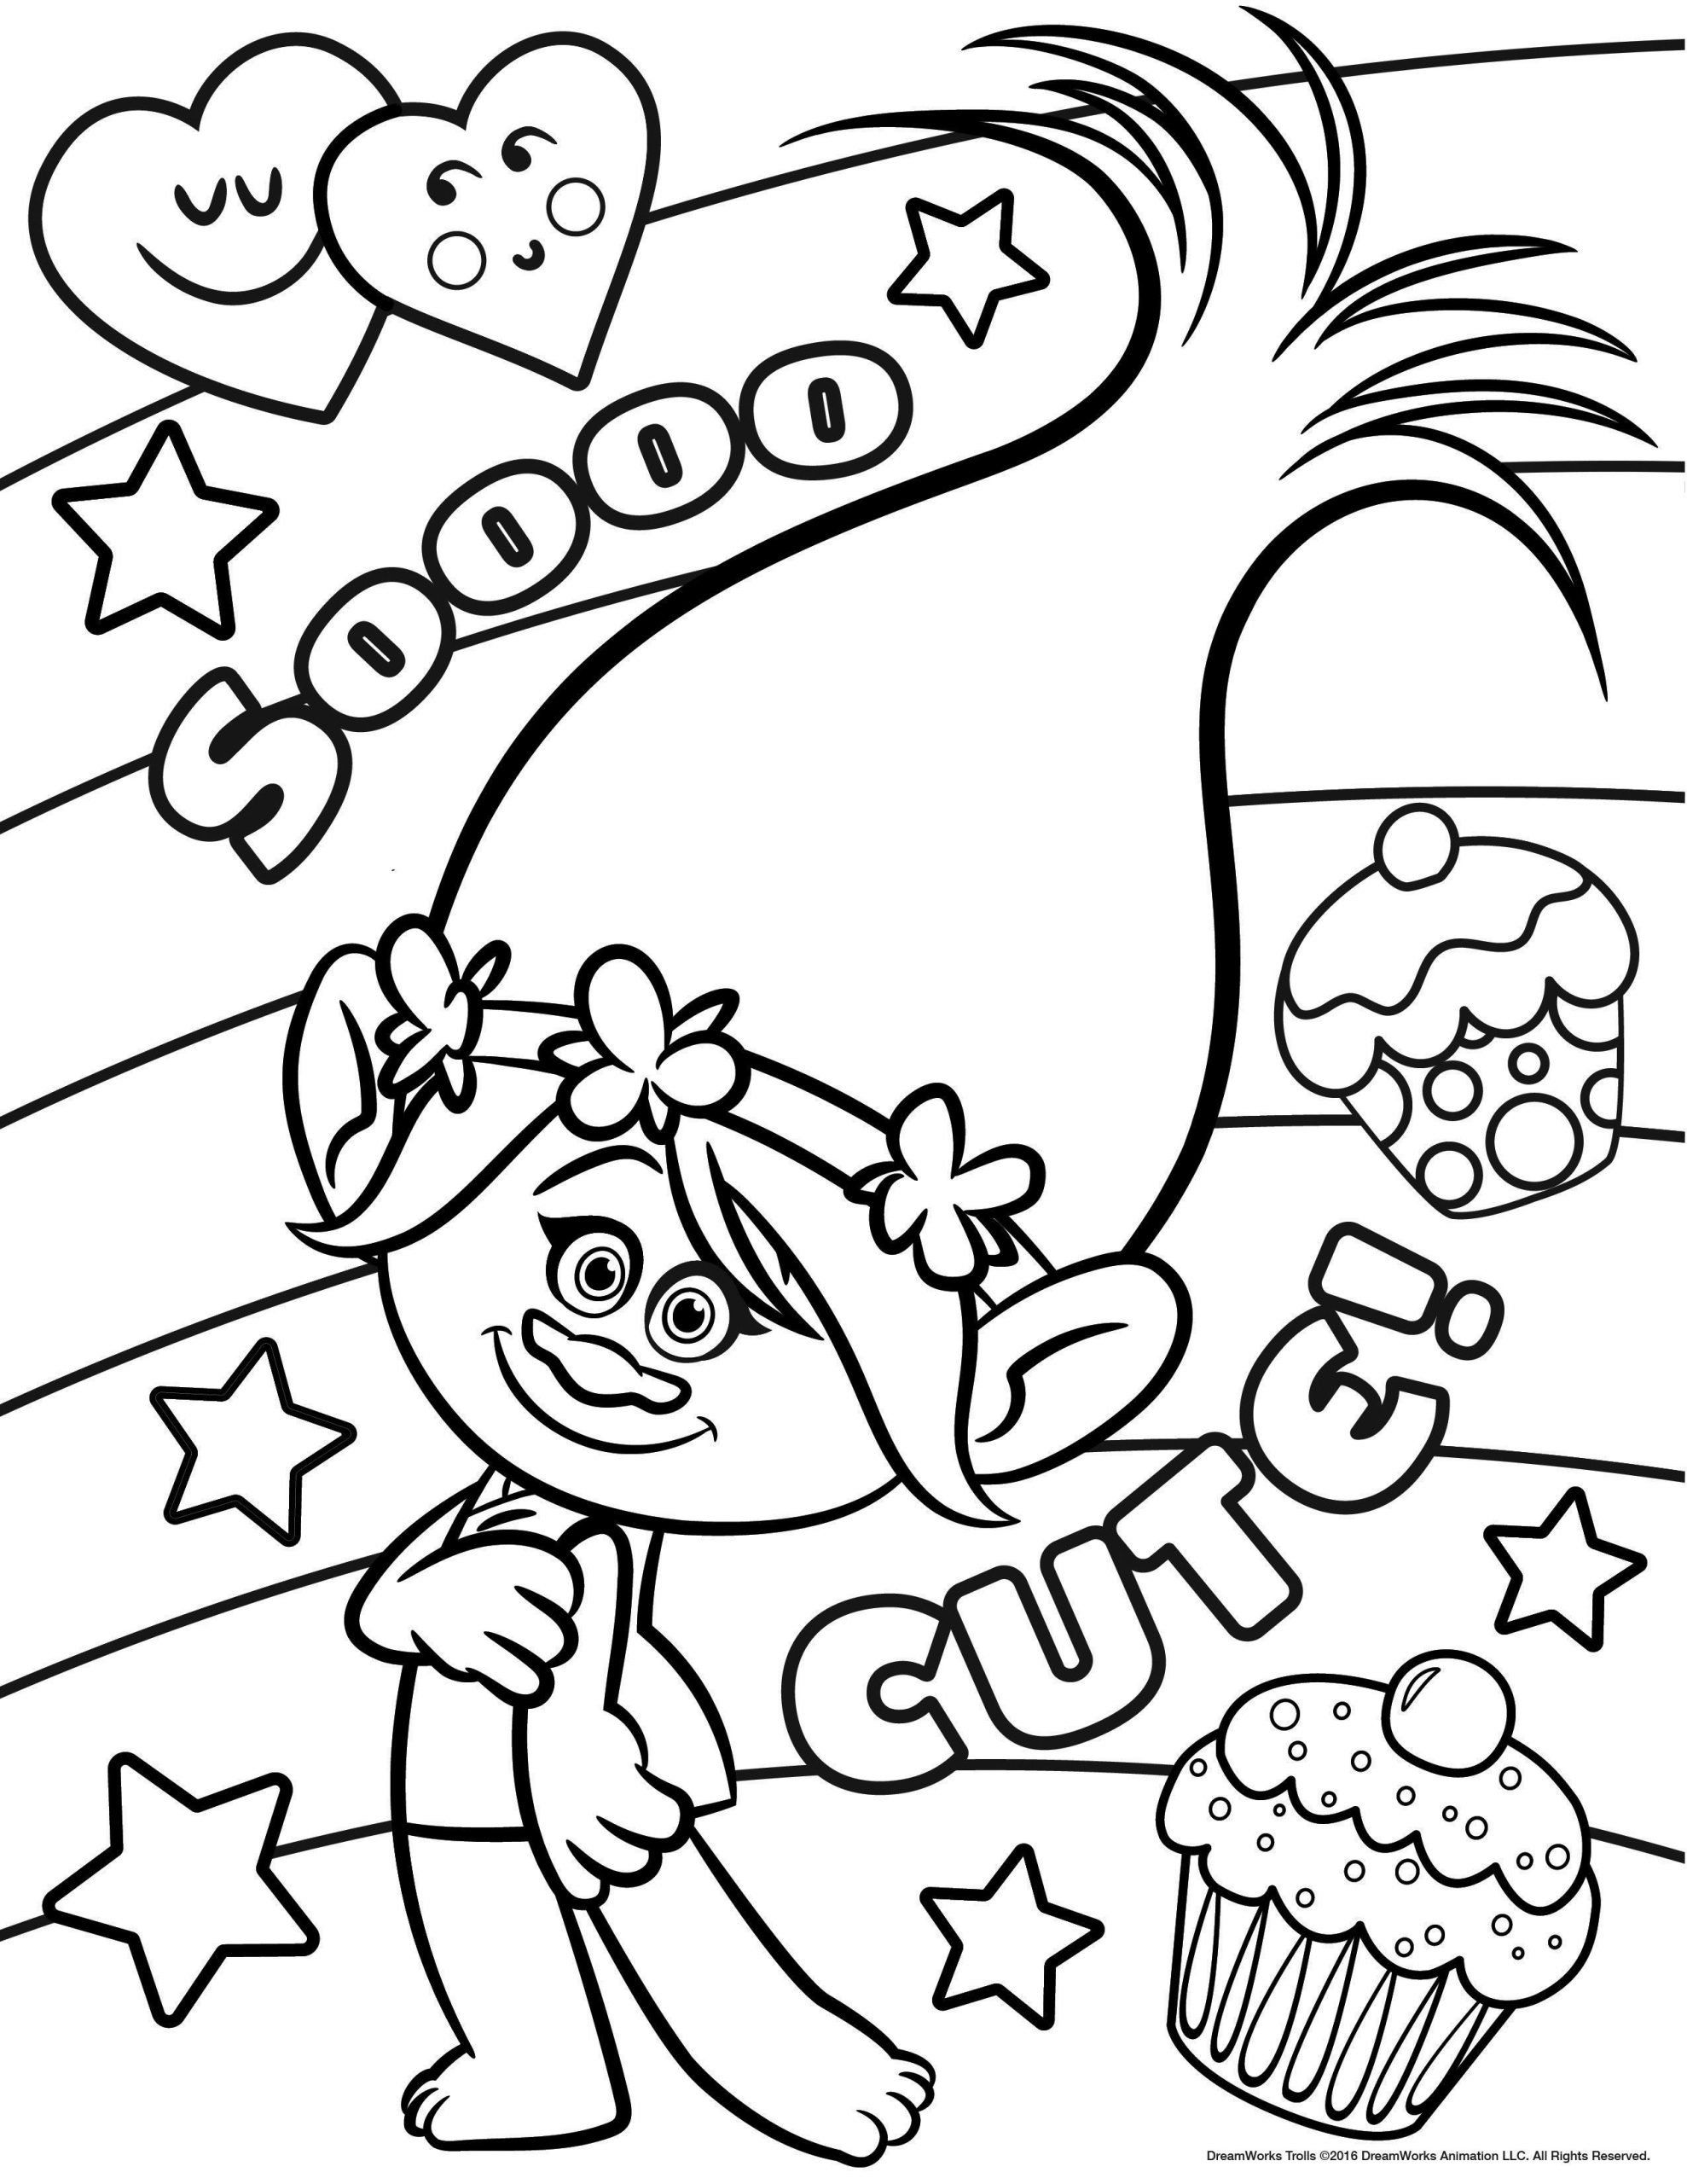 Trolls Movie Free Coloring Pages Trolls Coloring Pages Free Disney Coloring Pages Poppy Coloring Page Disney Coloring Pages